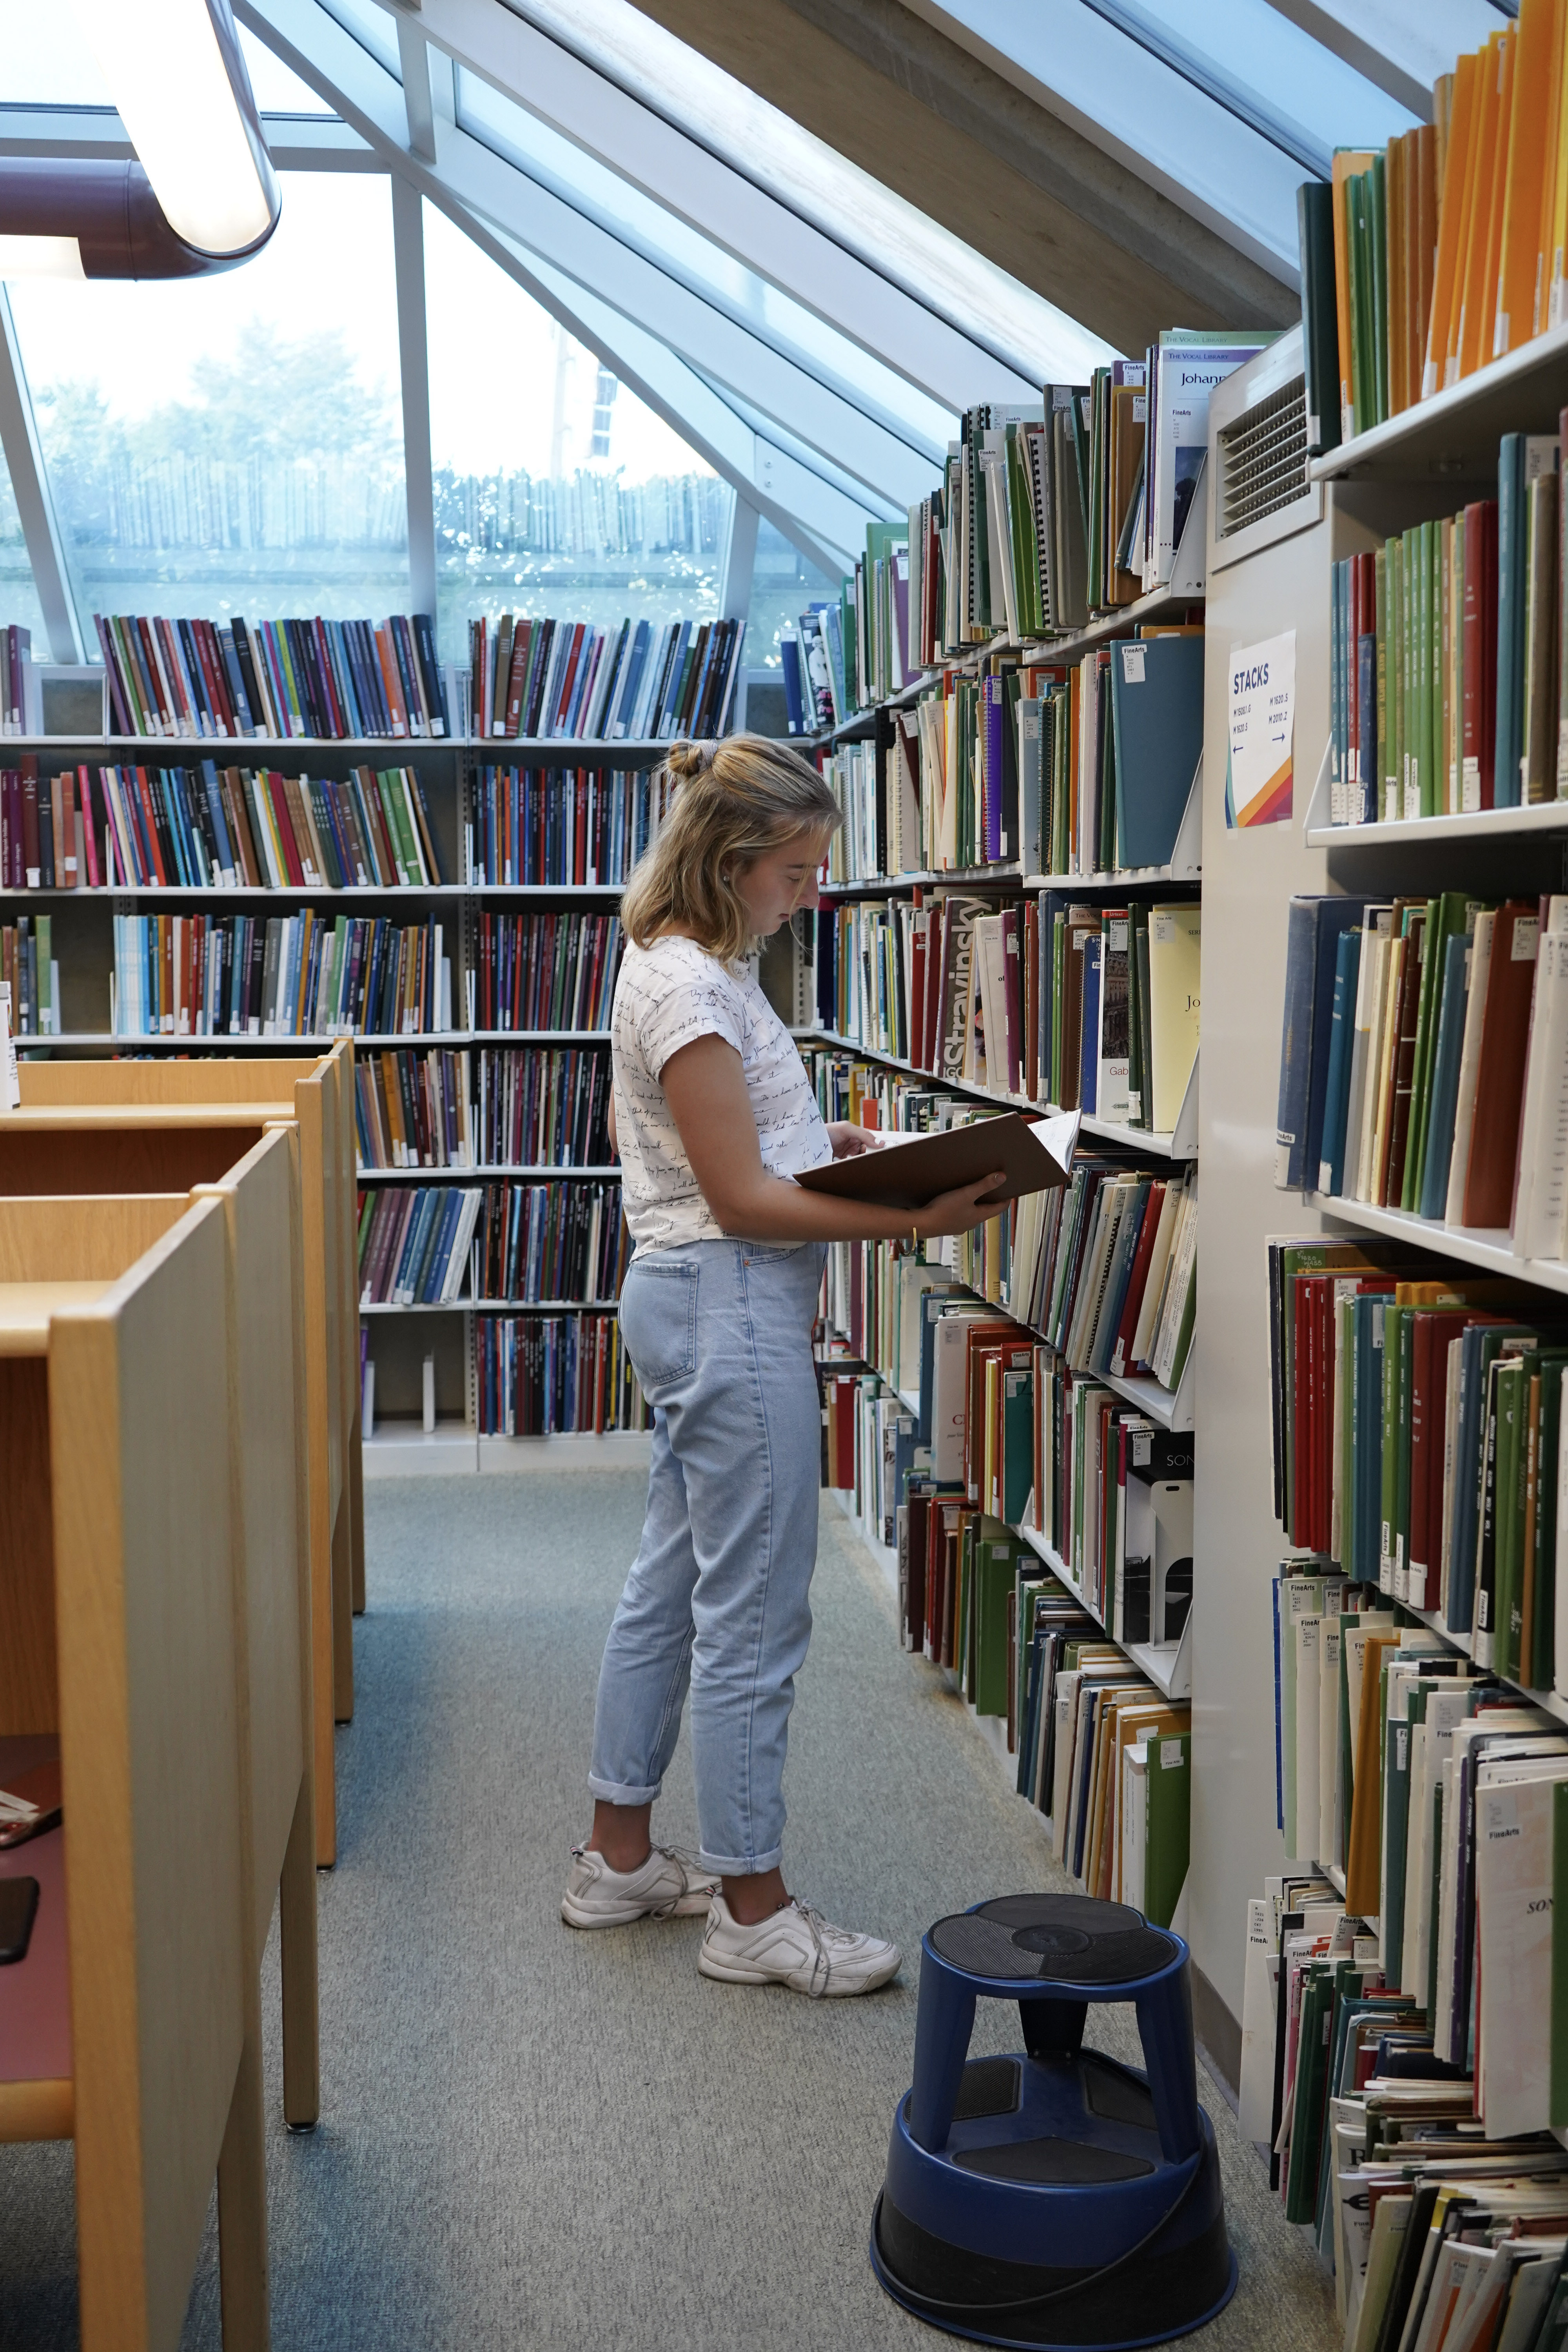 A student browsing the bookshelves under a skylight.